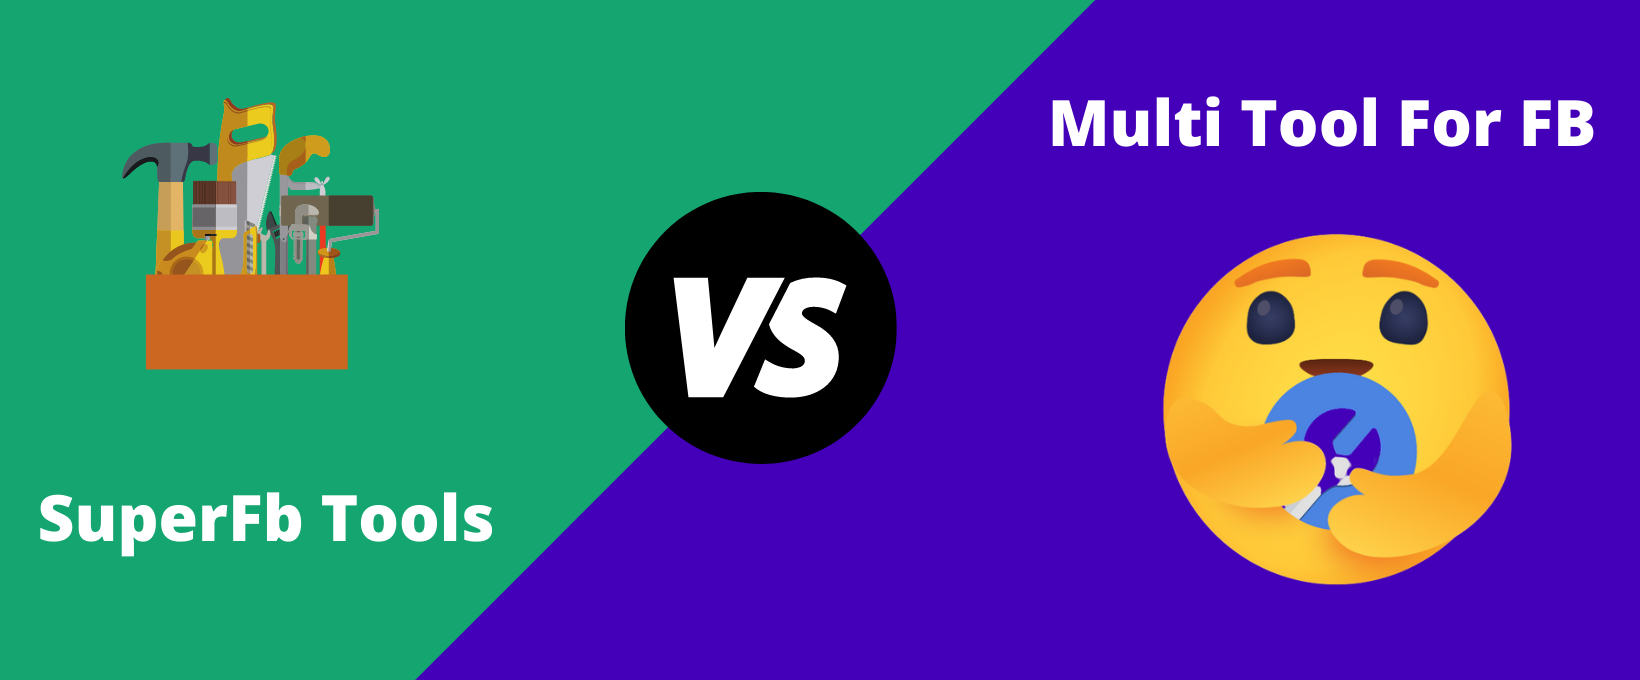 MultiTool For Facebook Vs SuperFb Tools